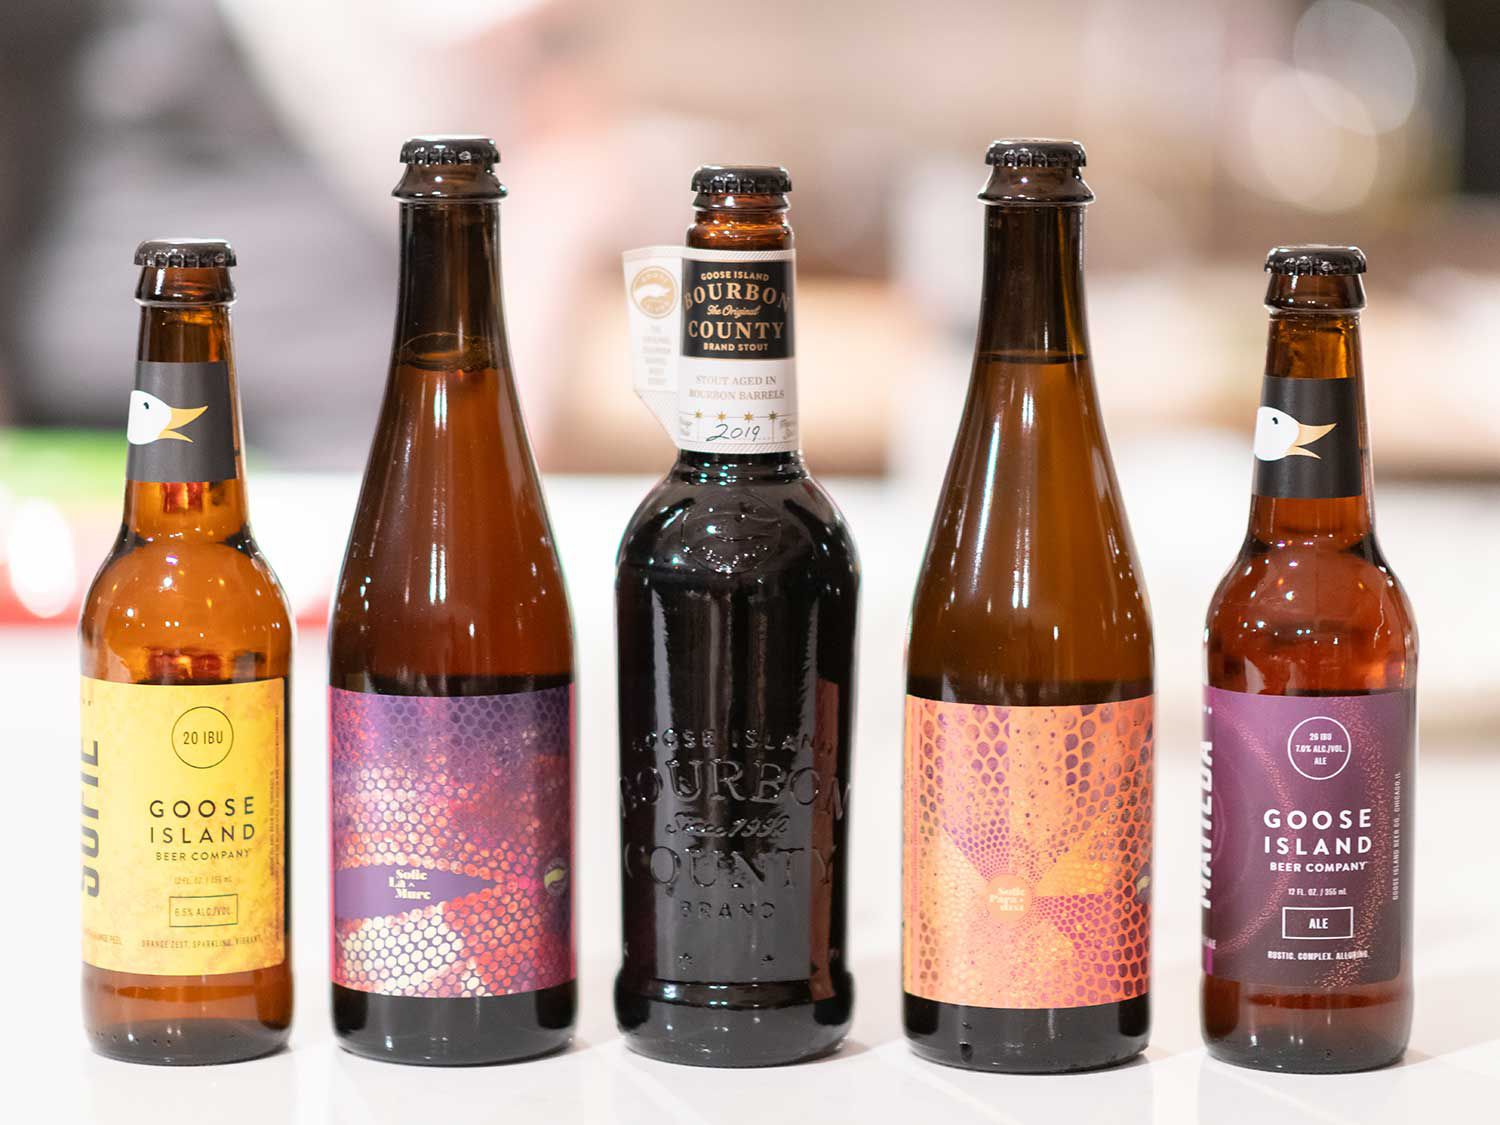 Goose Island bought a stellar line-up of brews to pair with Baxtrom's dishes.